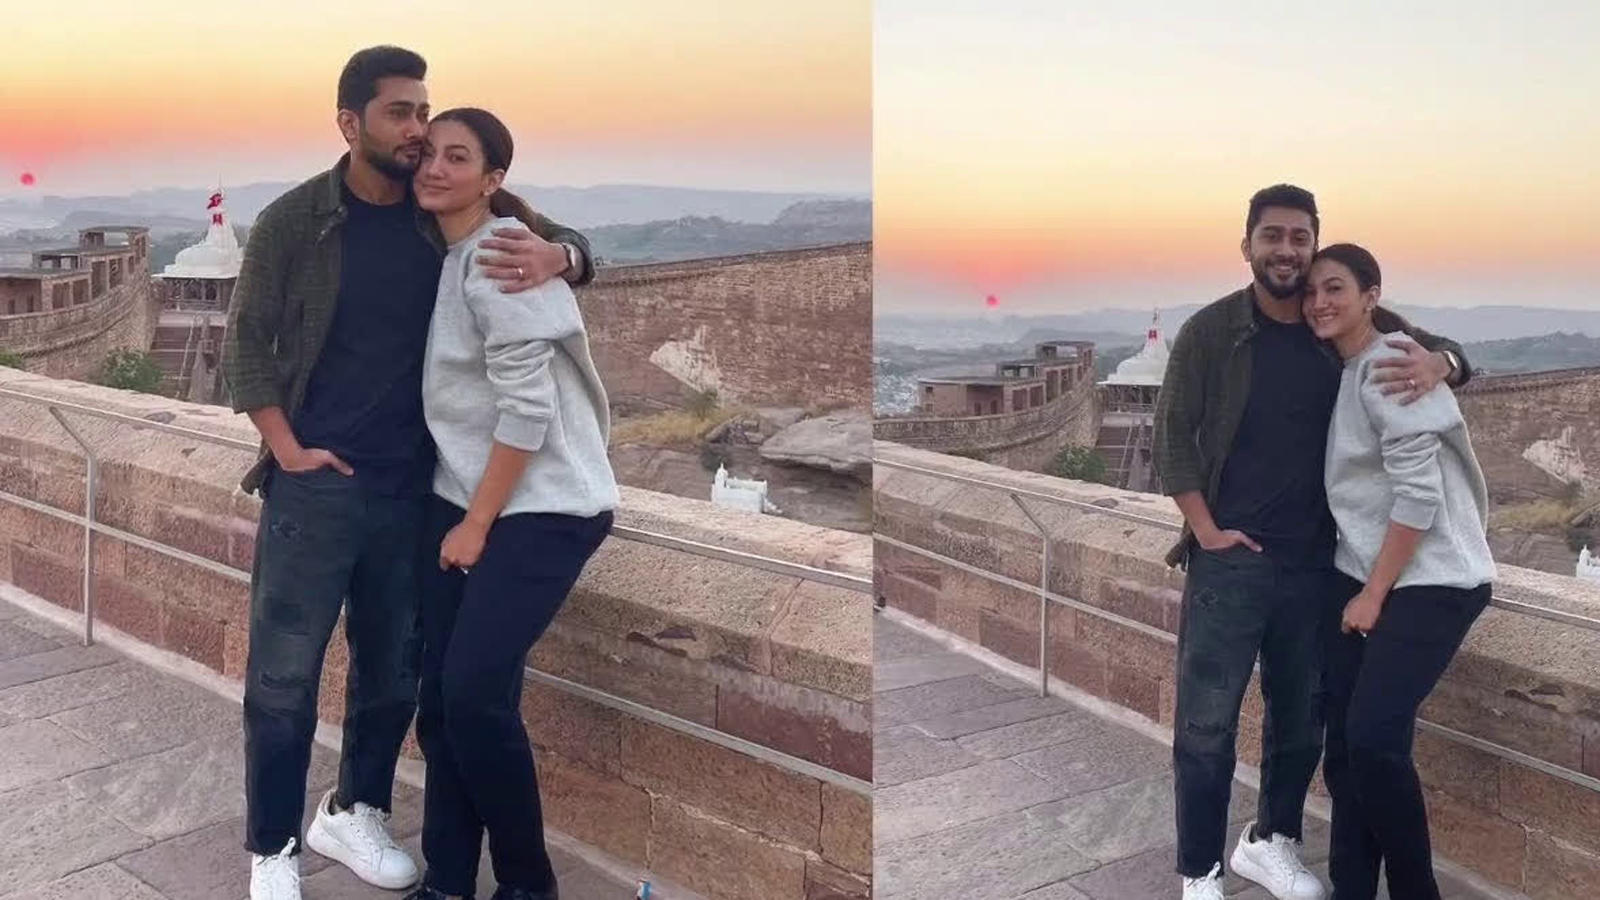 gauahar-khan-hubby-zaid-darbar-return-to-mumbai-after-spending-quality-time-together-in-udaipur